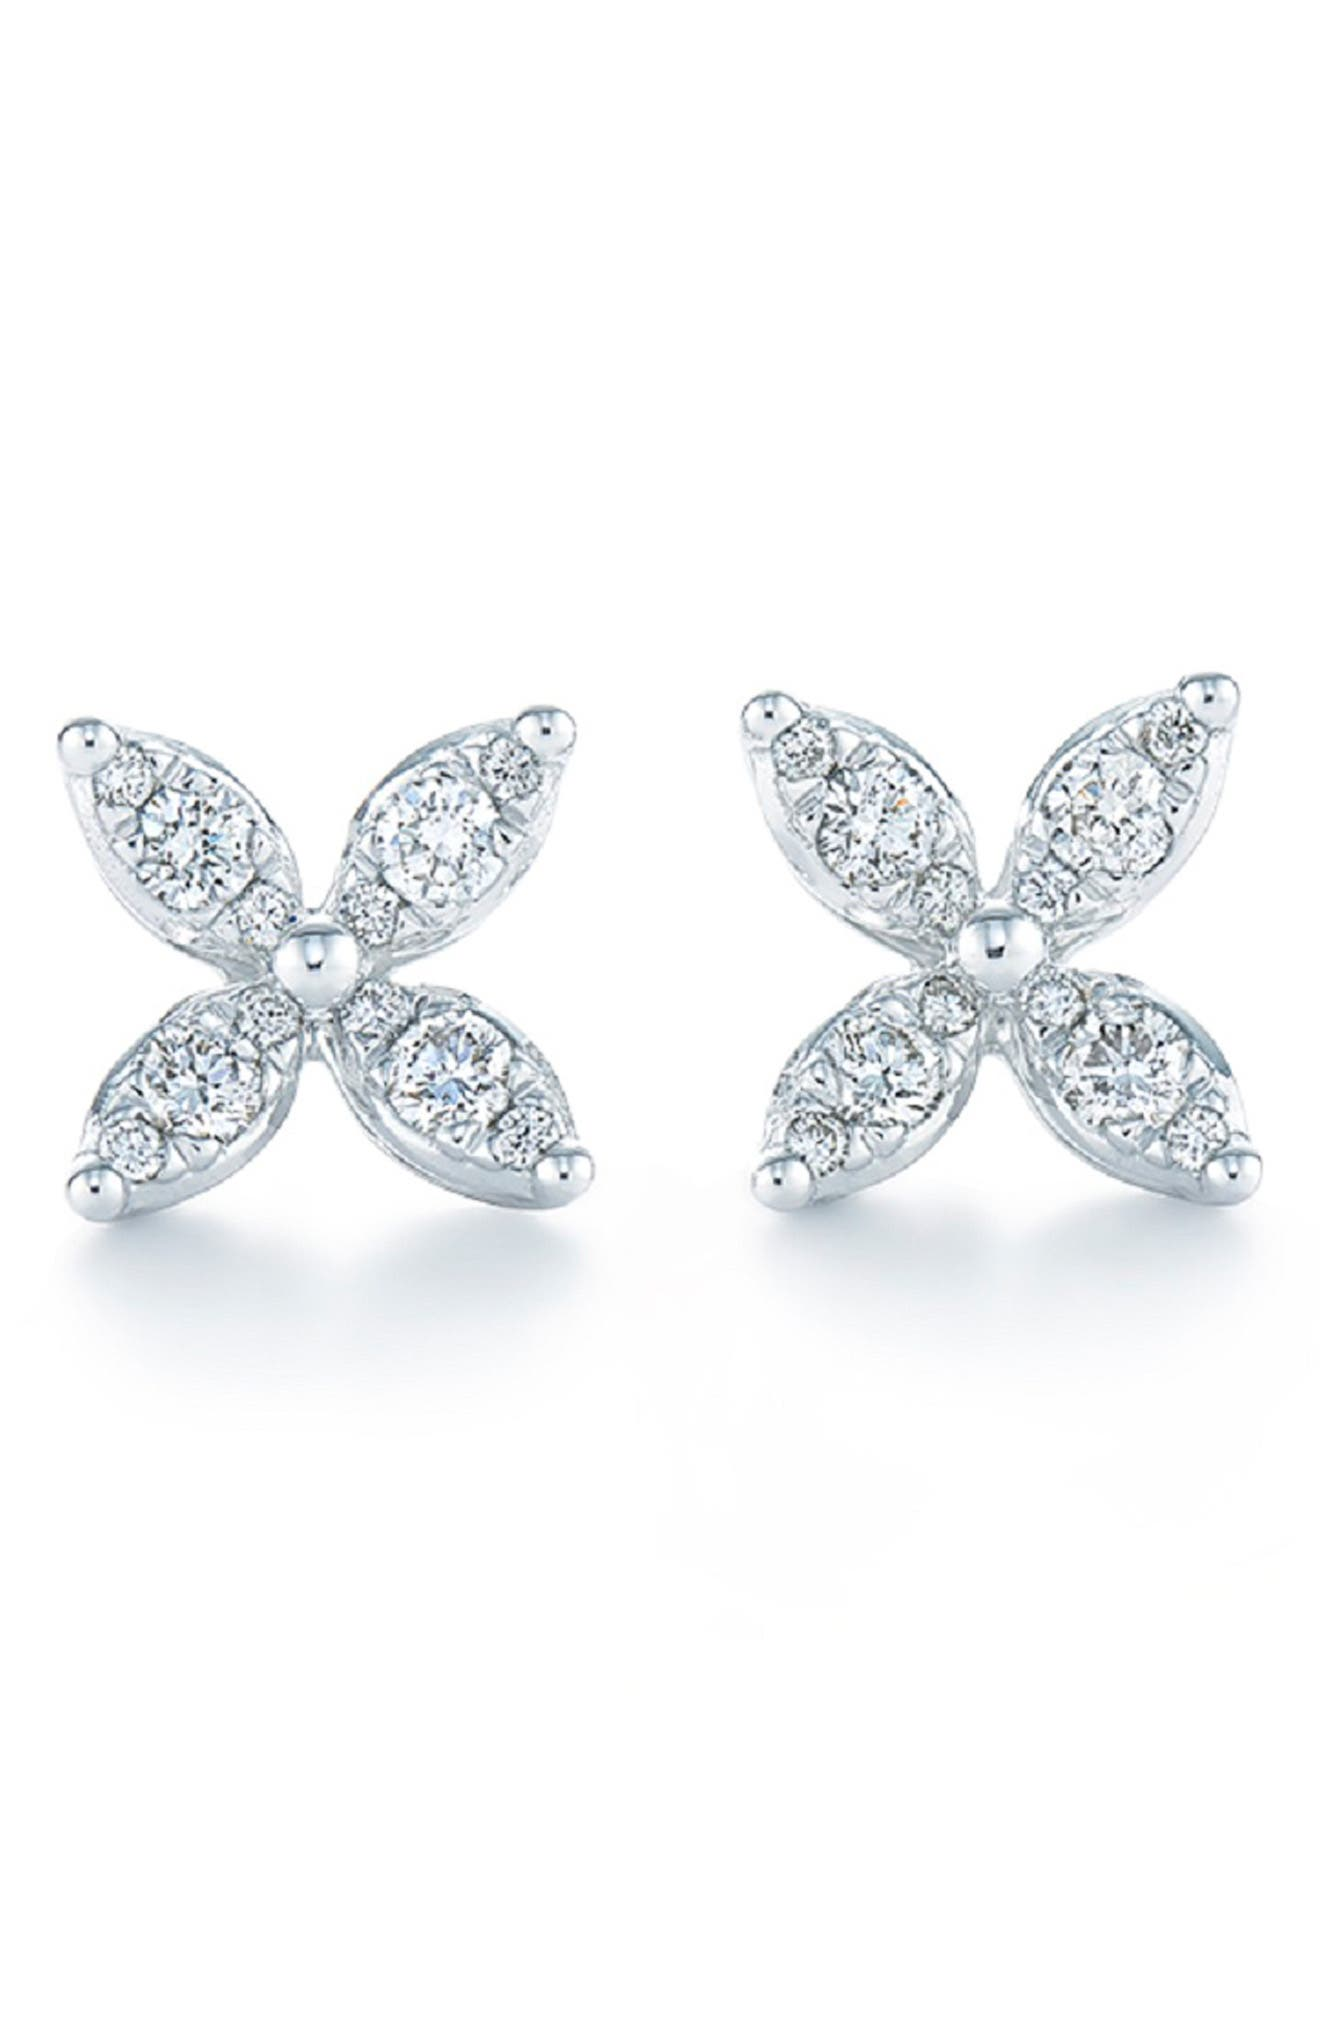 'Sunburst' Diamond Stud Earrings,                             Main thumbnail 1, color,                             WHITE GOLD